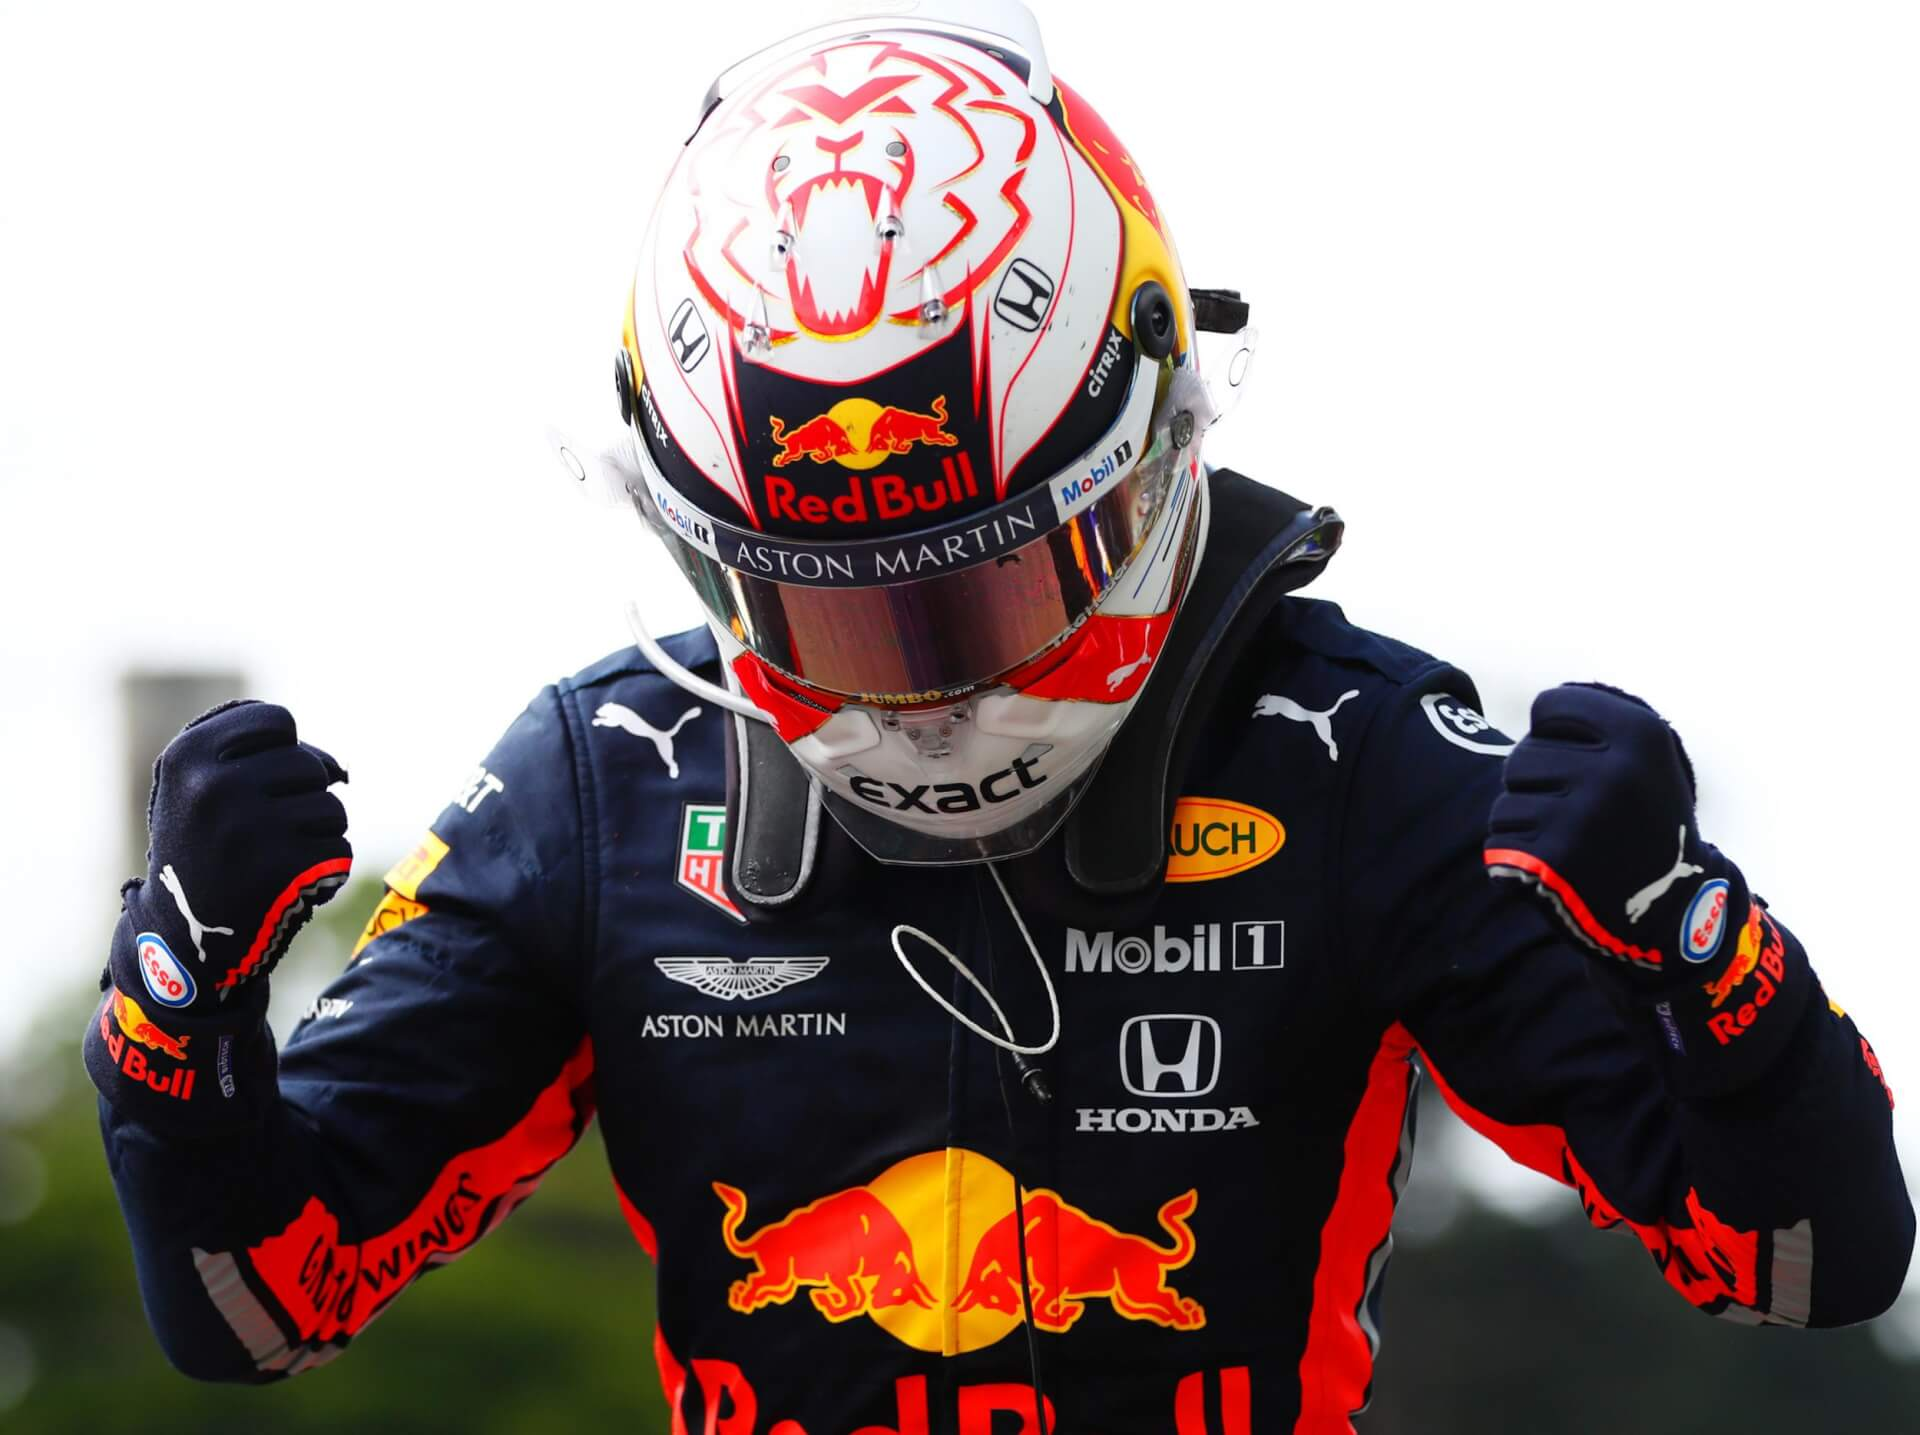 Crazy Brazil Race: Red Bull's Max Verstappen Wins Thanks to Two Ferrari Crashes